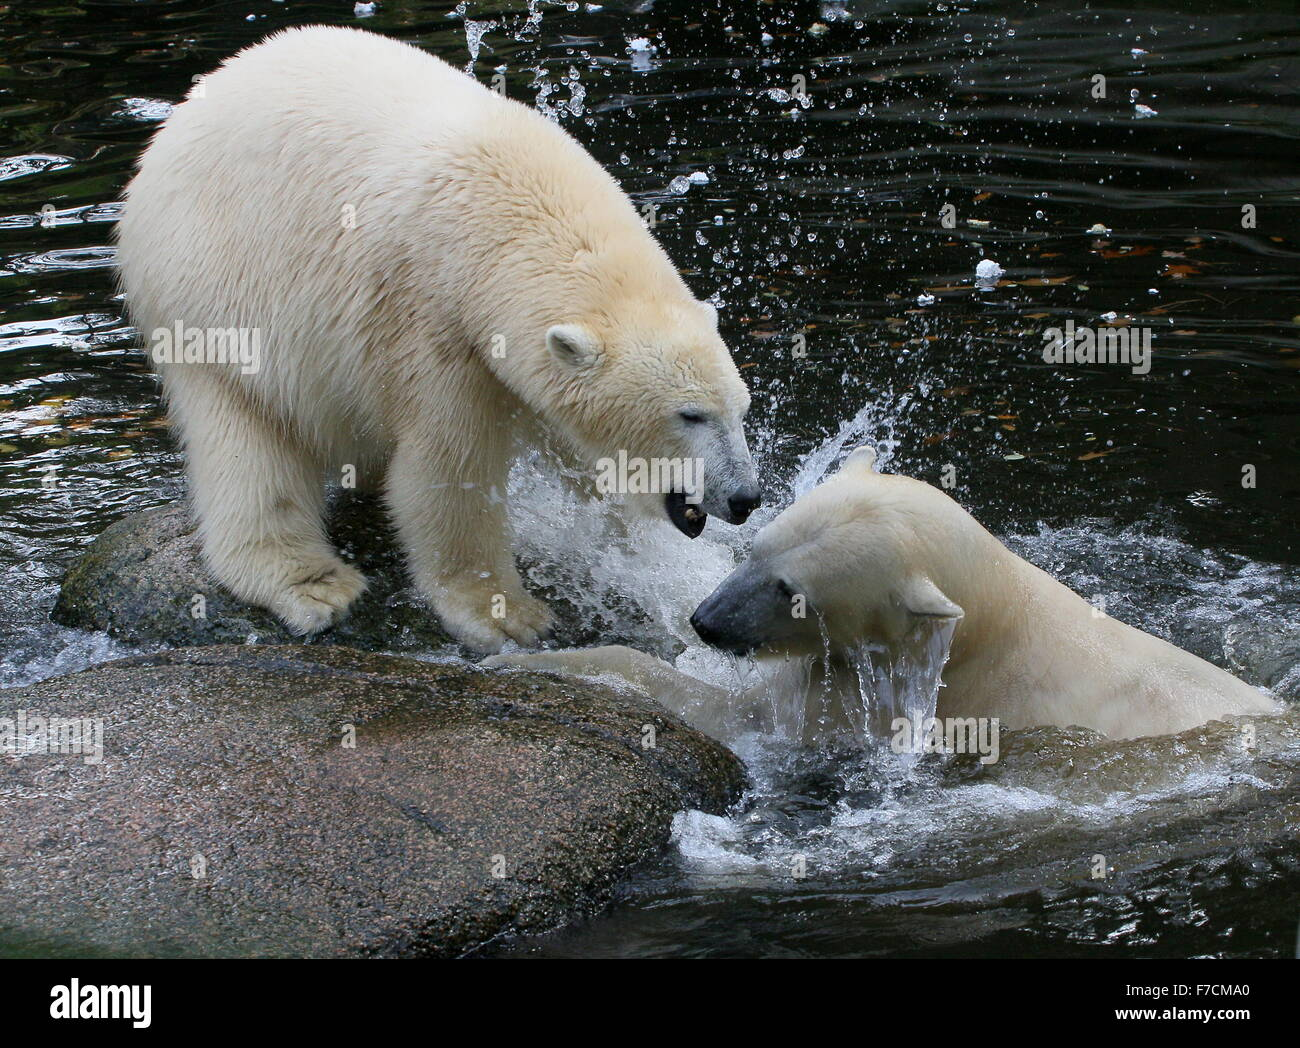 Two feisty female Polar bears (Ursus maritimus) fighting each other on shore, one growling, other lunging upward - Stock Image